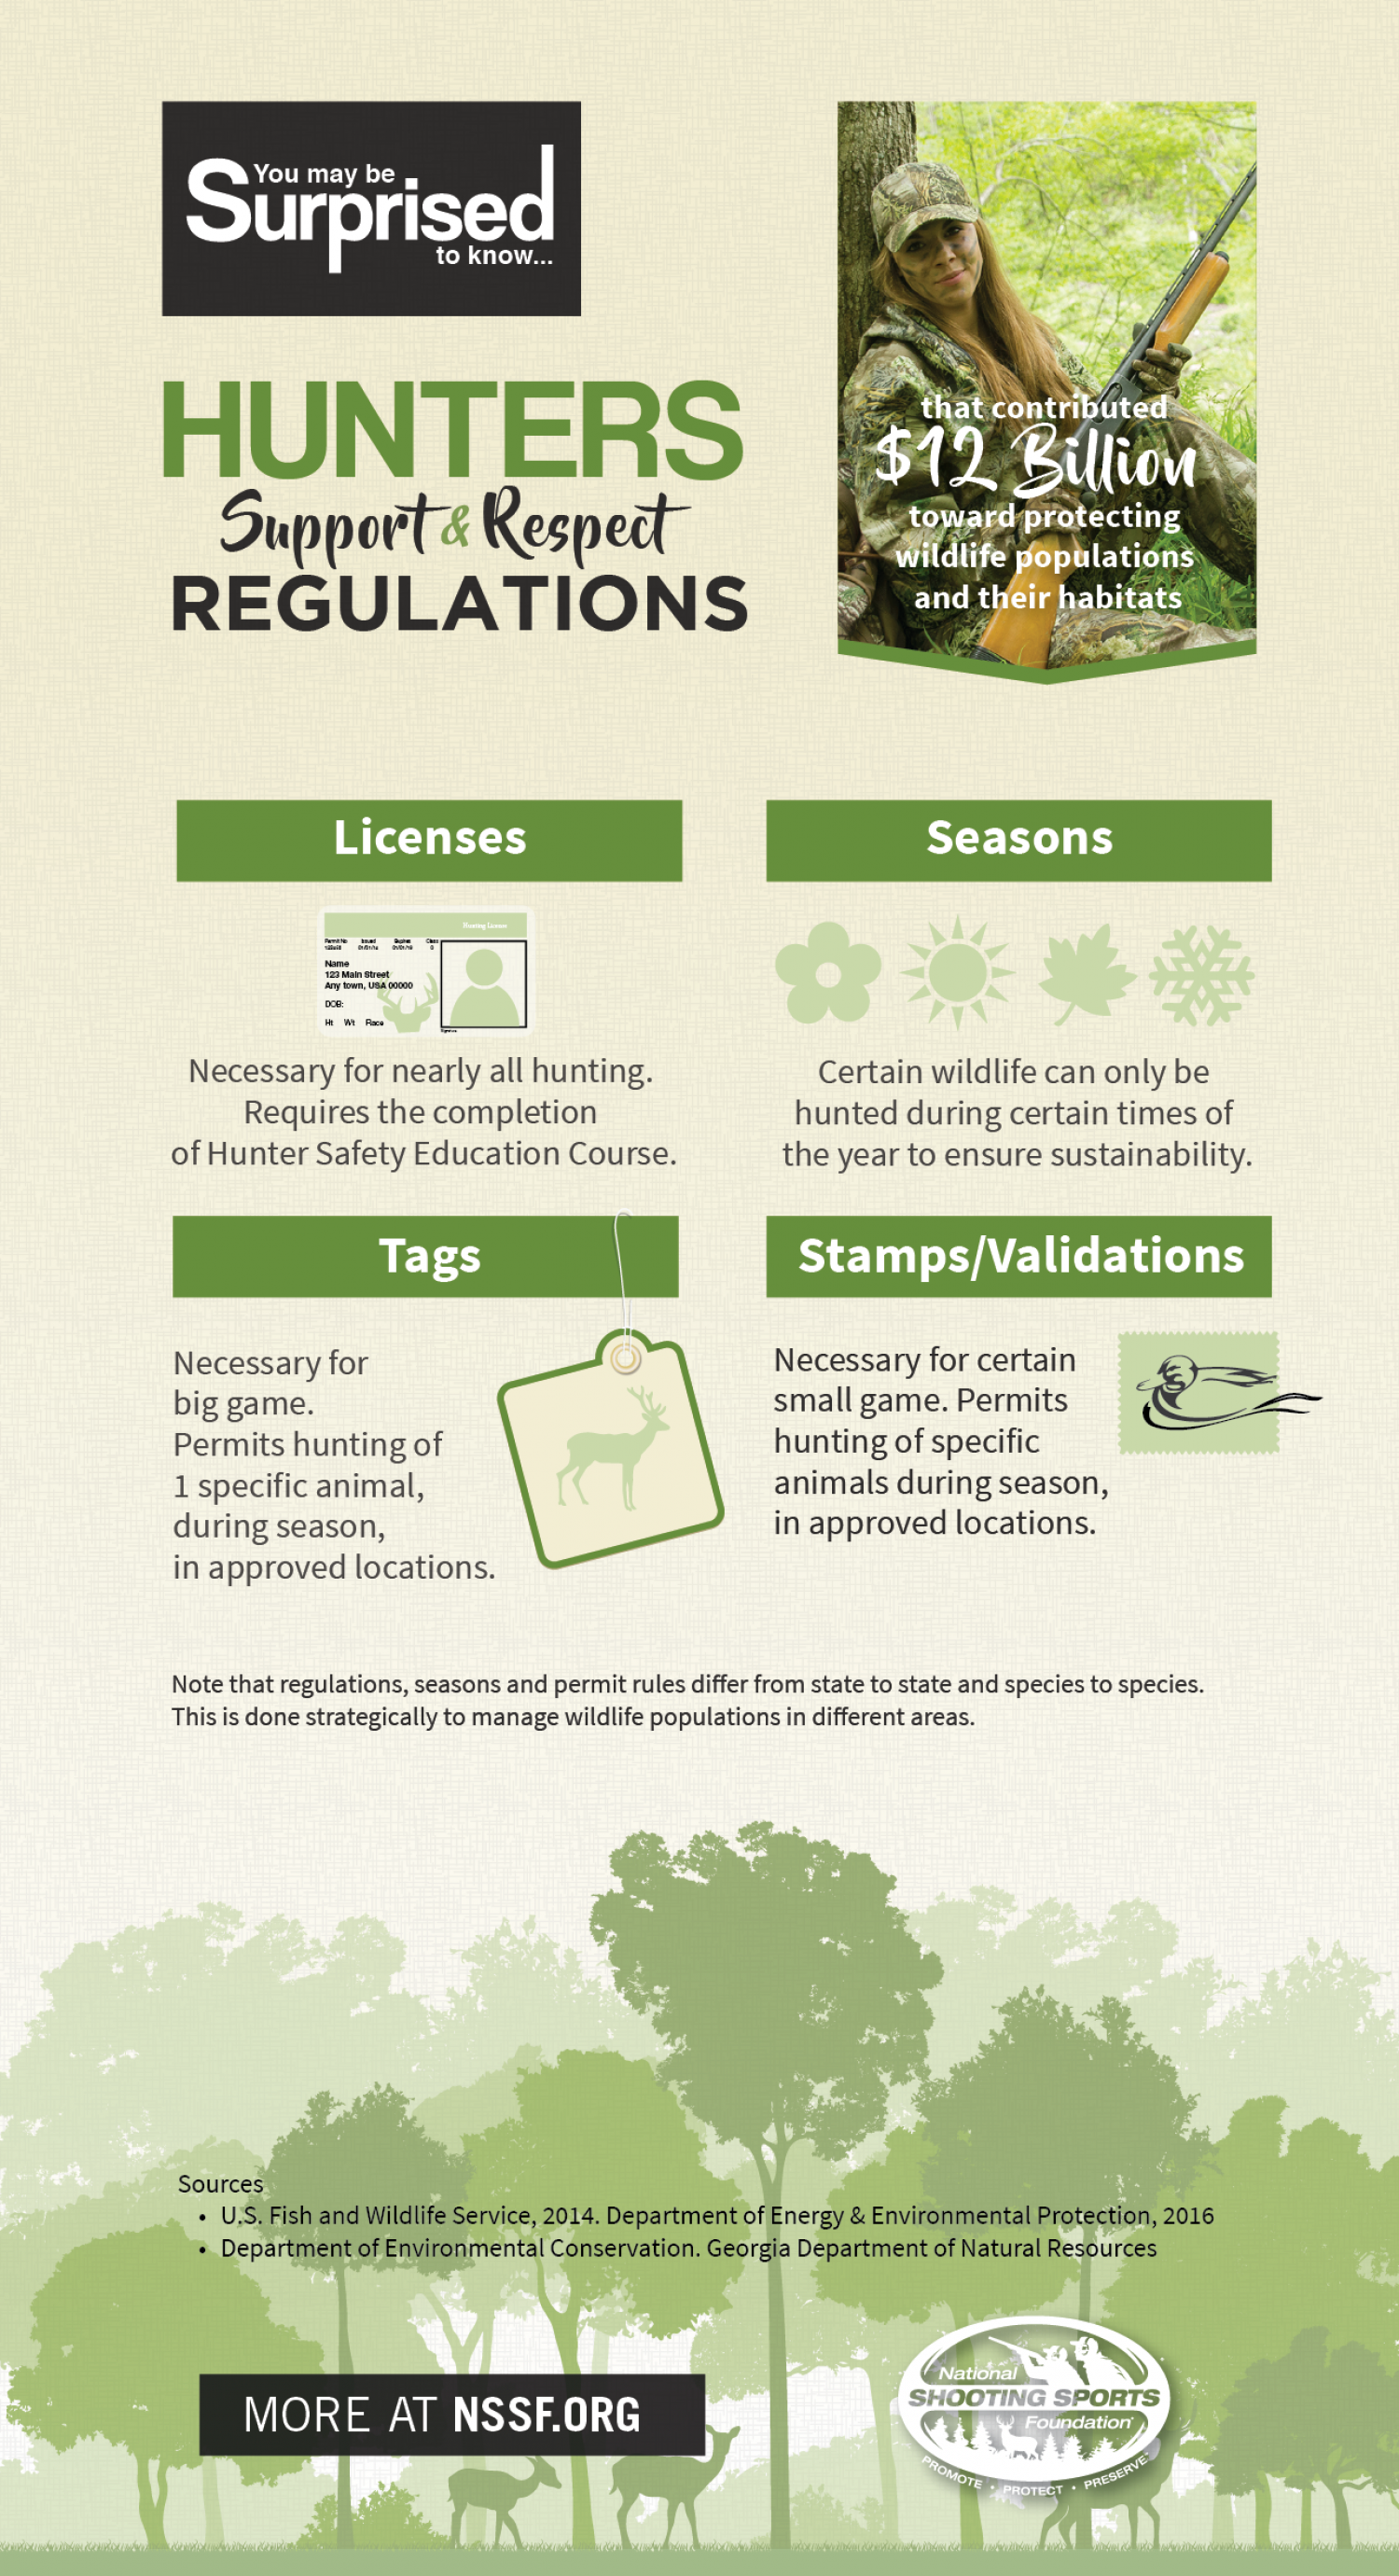 Hunters Support & Respect Regulations Infographic